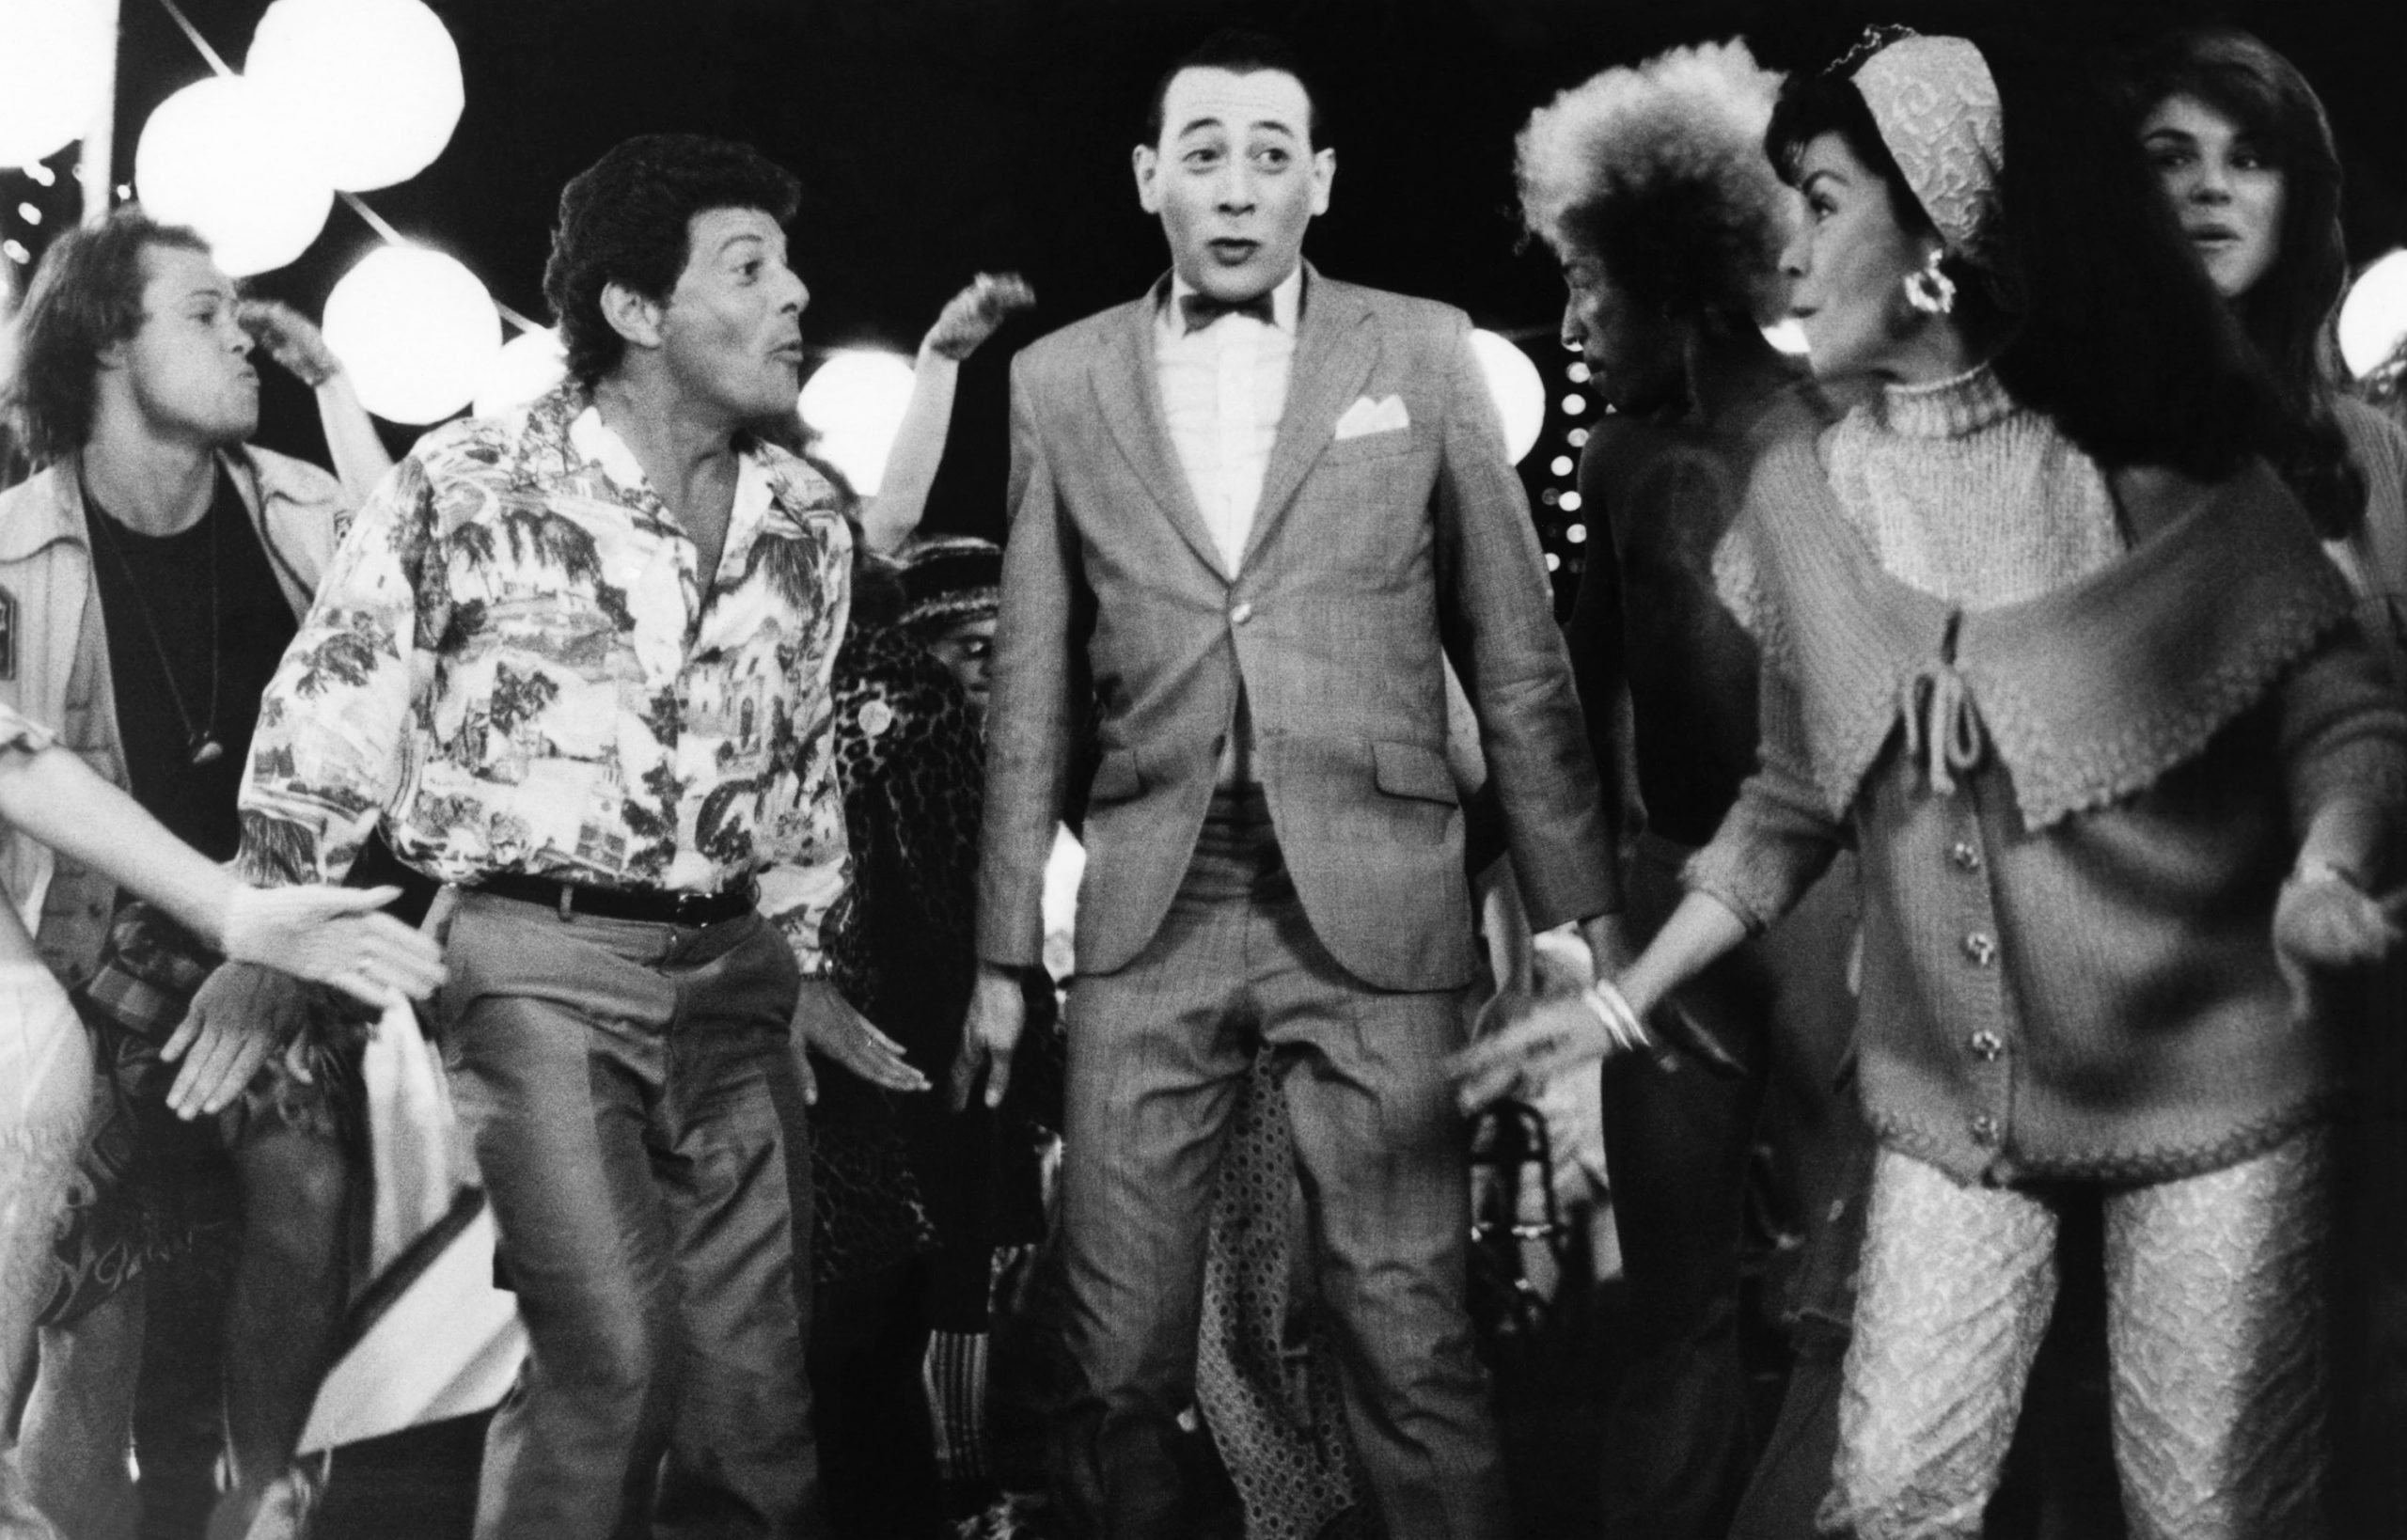 frankie-avalon-pee-wee-herman-annette-funicello-back-to-the-beach